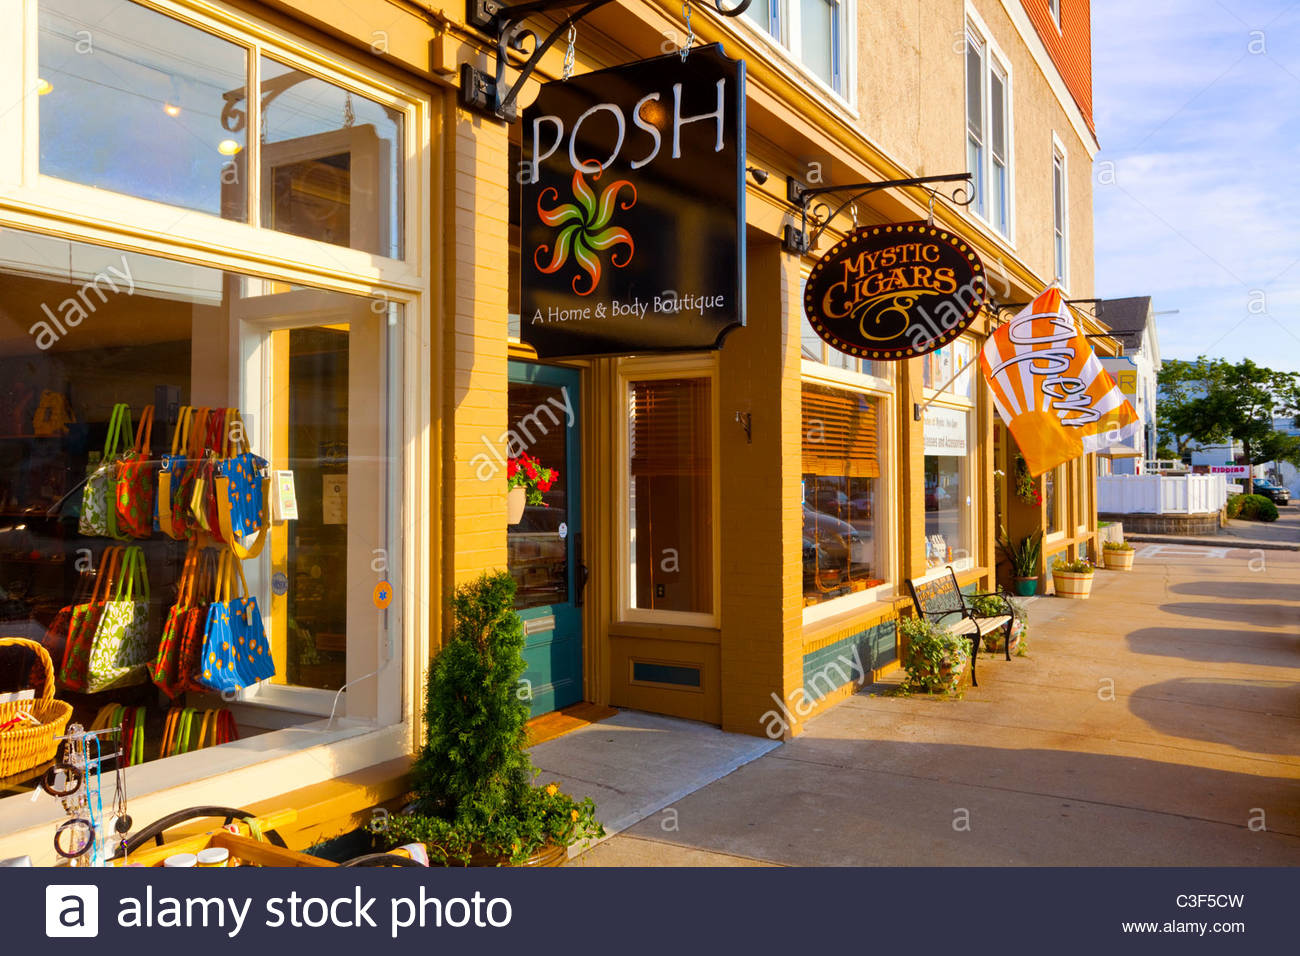 Stores along Cottrell Street. Downtown Mystic, Connecticut. - Stock Image